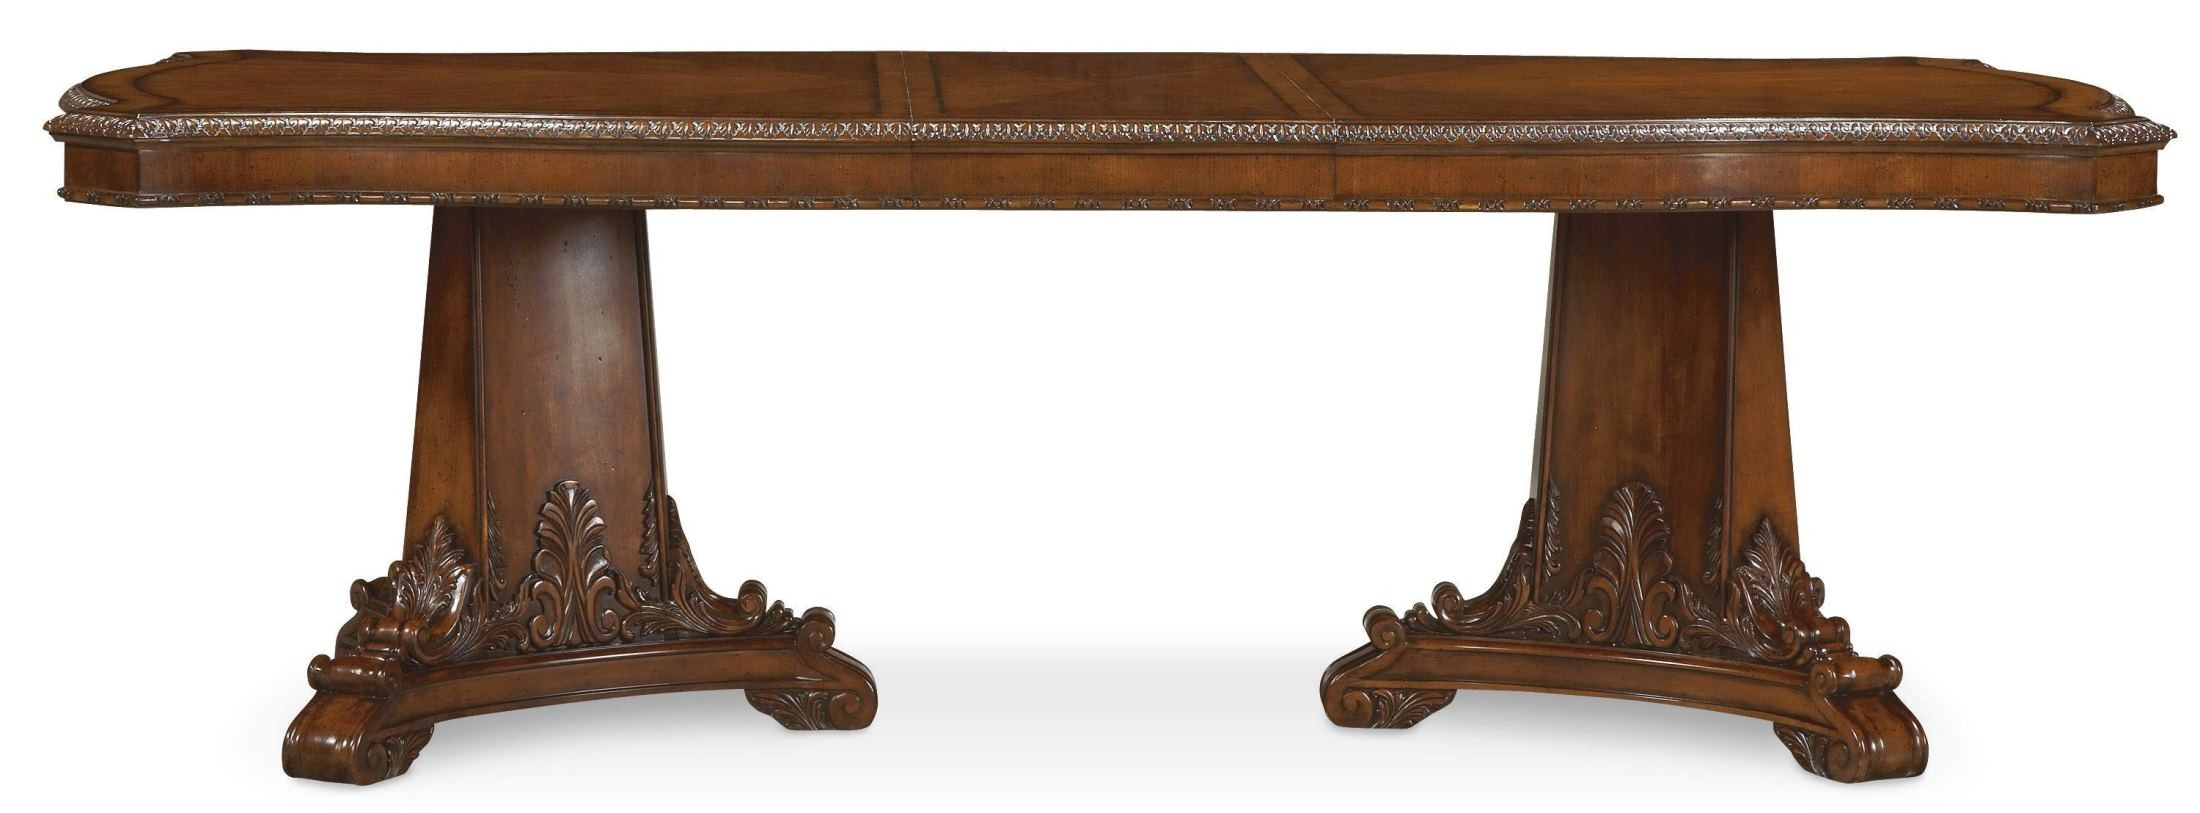 Old World Double Pedestal Extendable Dining Table From ART (143221 2606) |  Coleman Furniture